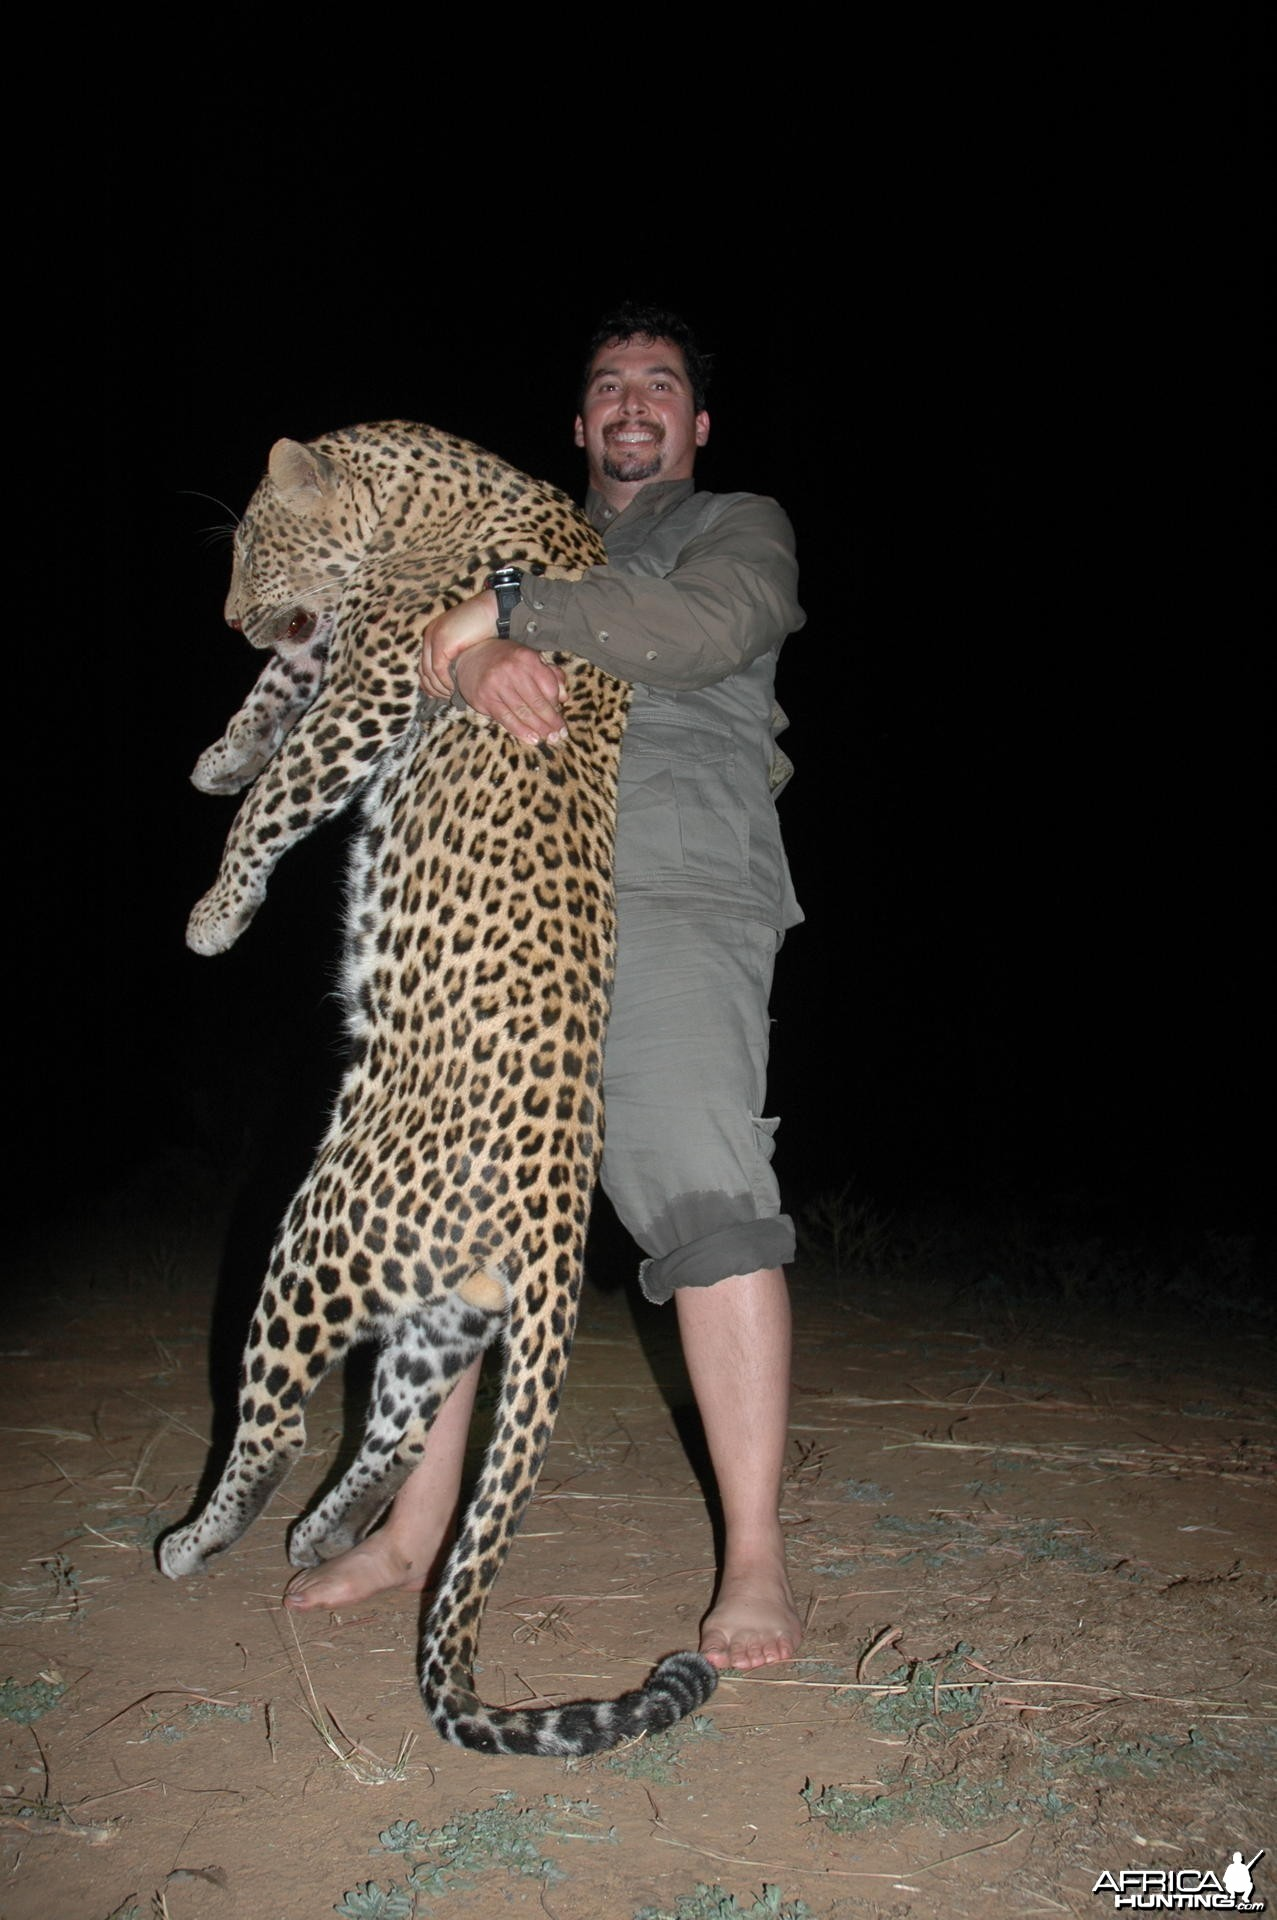 15 inch Leopard hunted in Zimbabwe